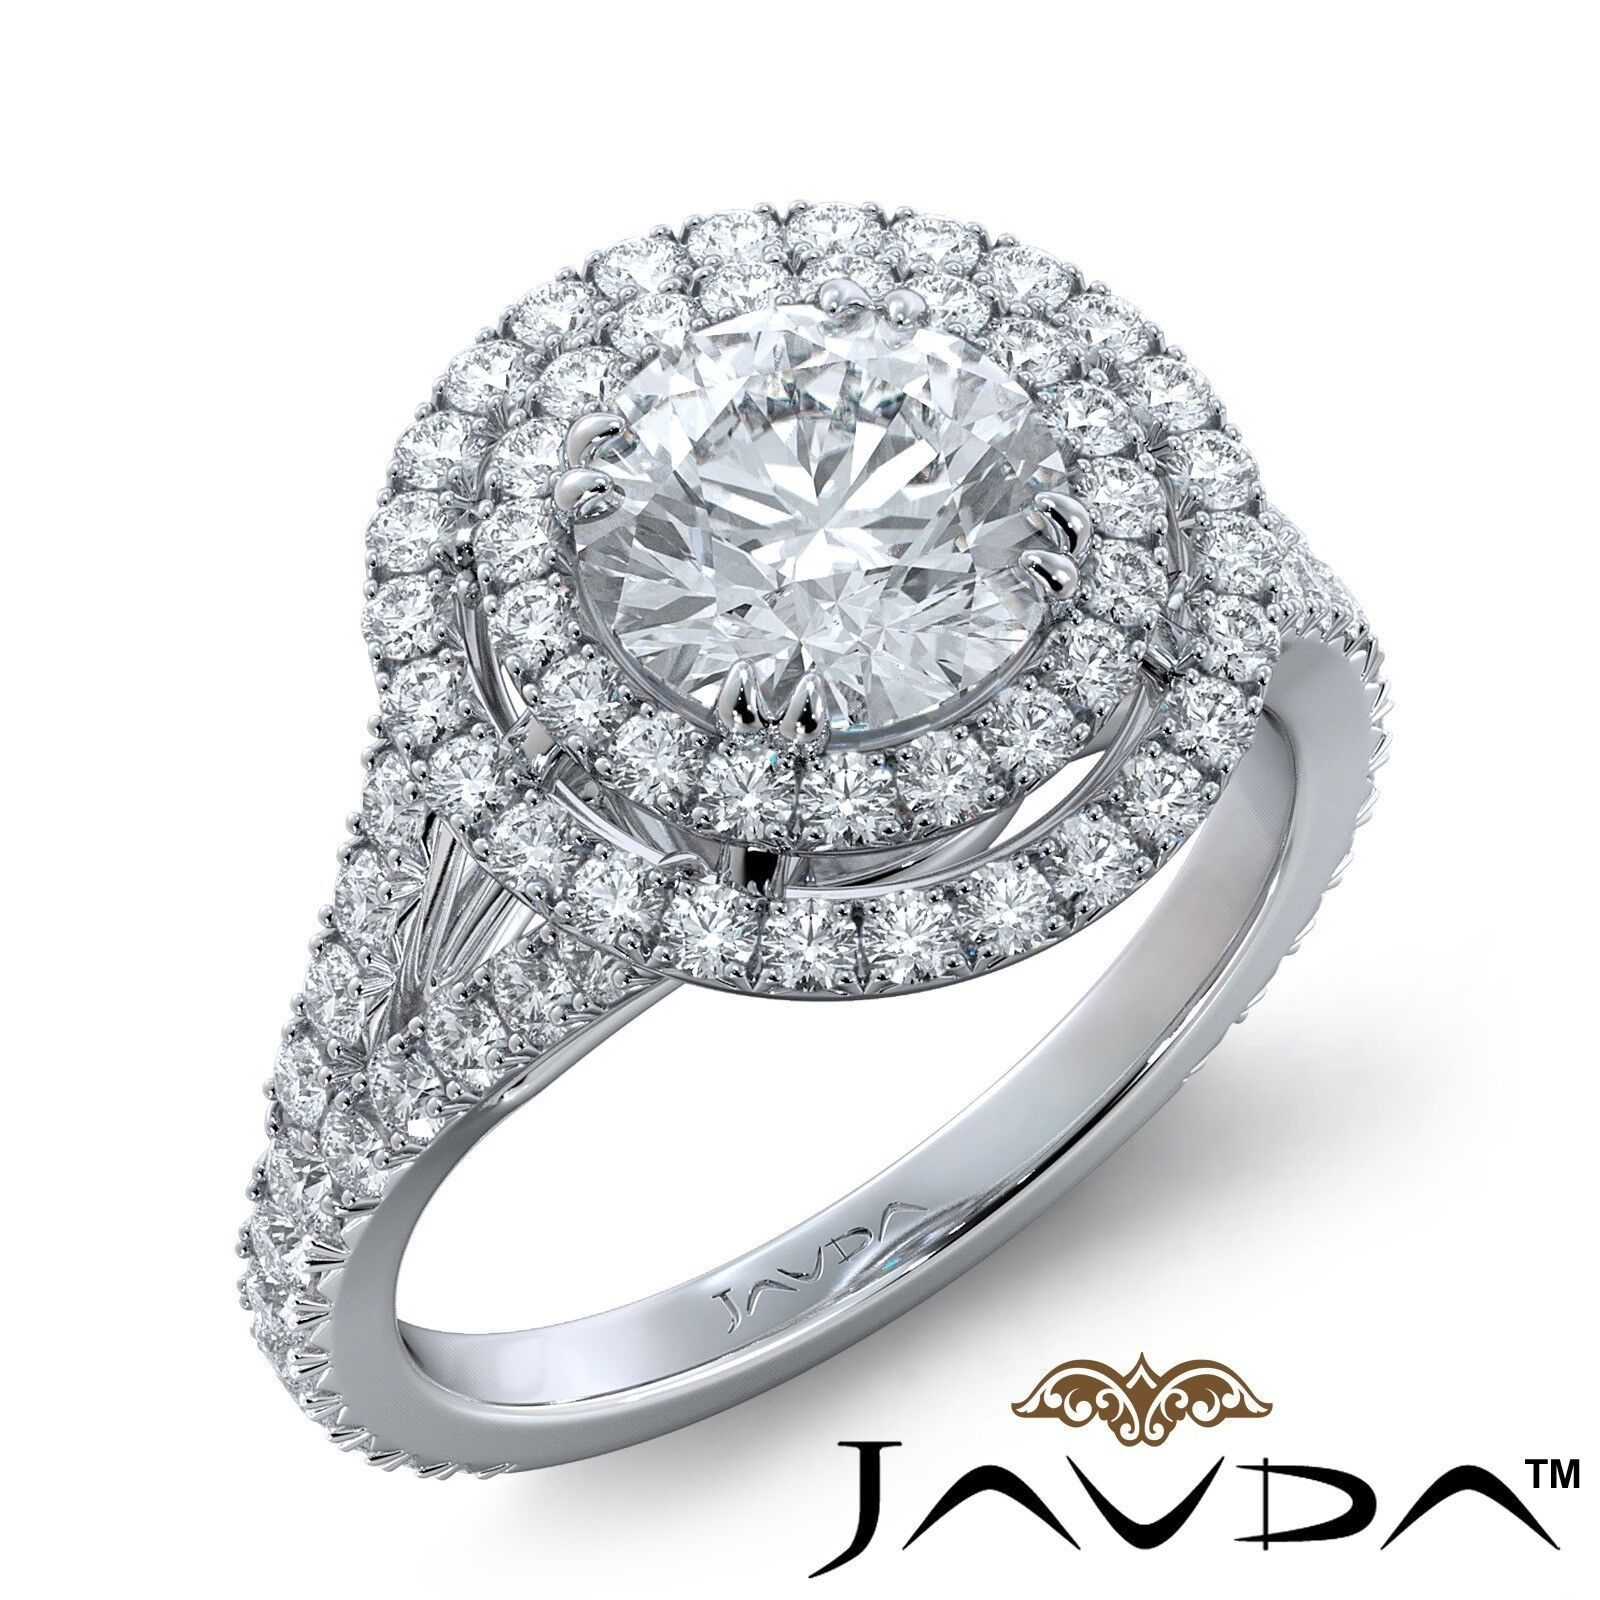 2.3ctw French V Cut Pave Gala Halo Round Diamond Engagement Ring GIA F-VVS2 Gold